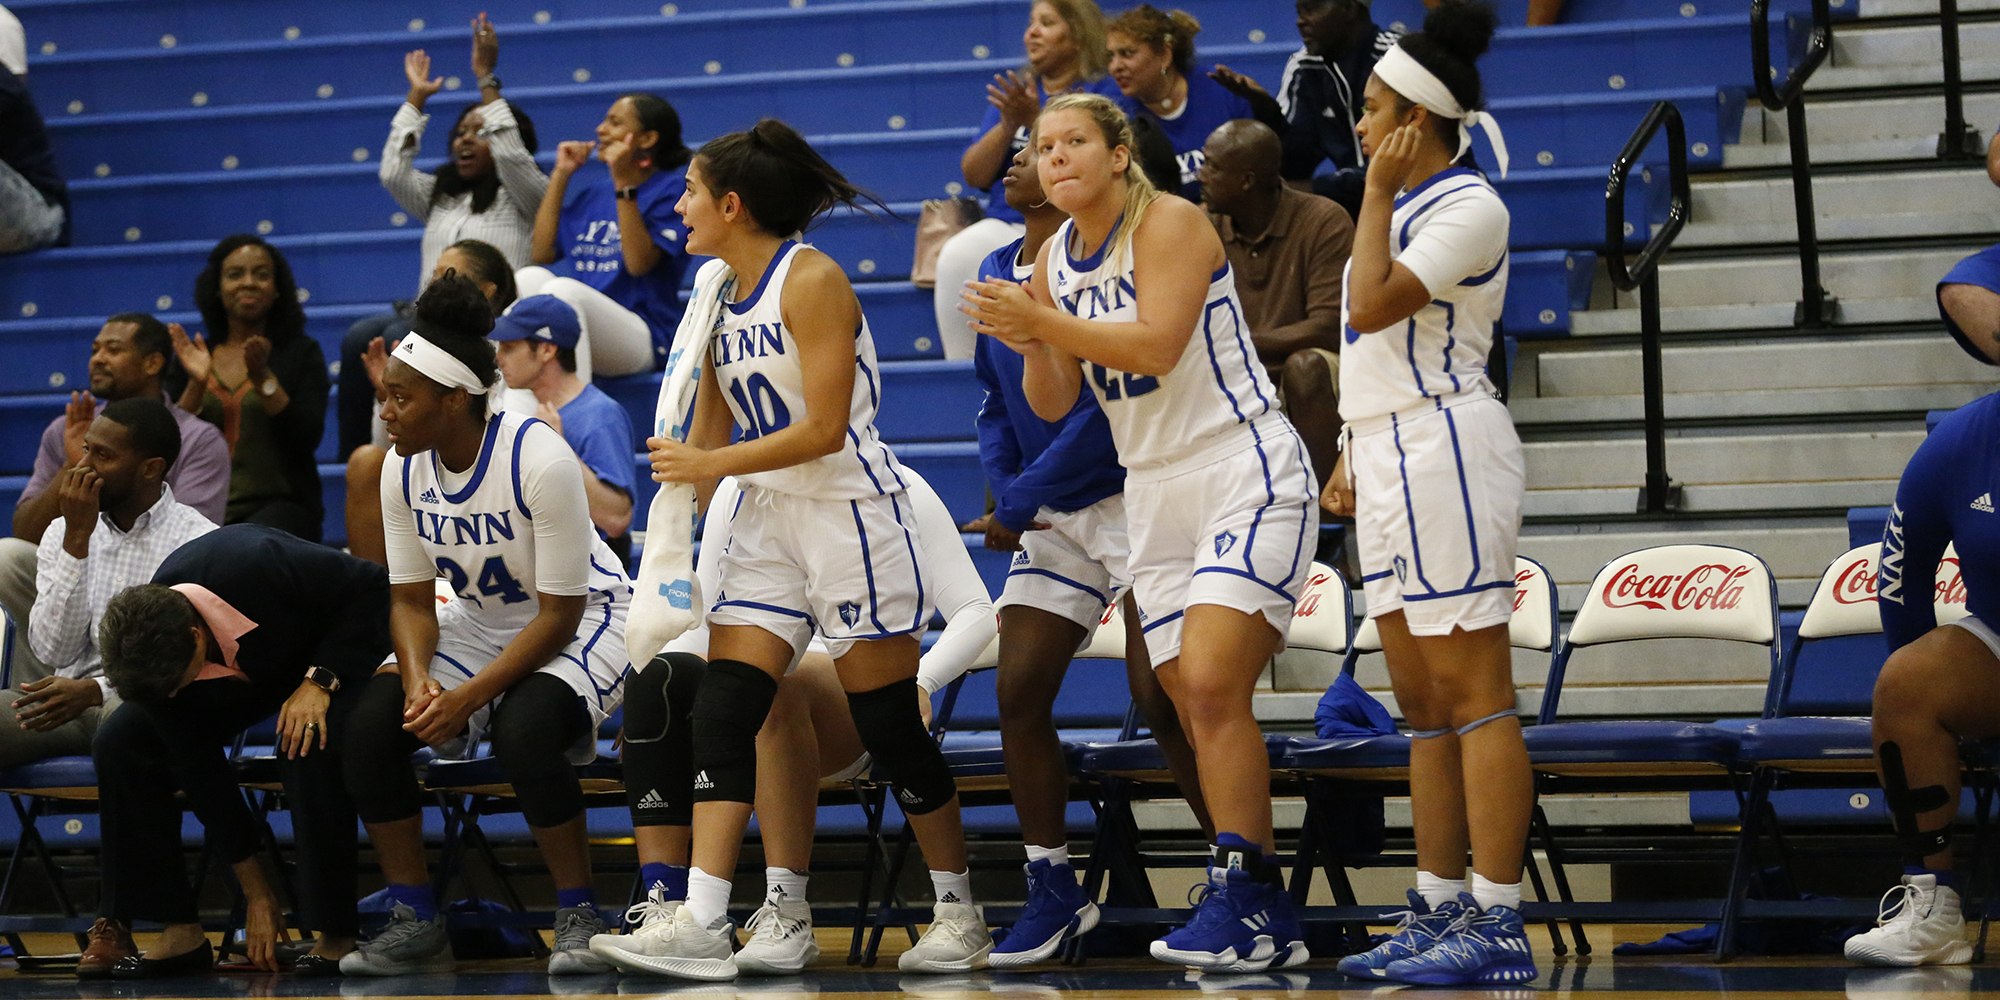 Women's Basketball Gets Back To Its Winning Ways at Embry-Riddle